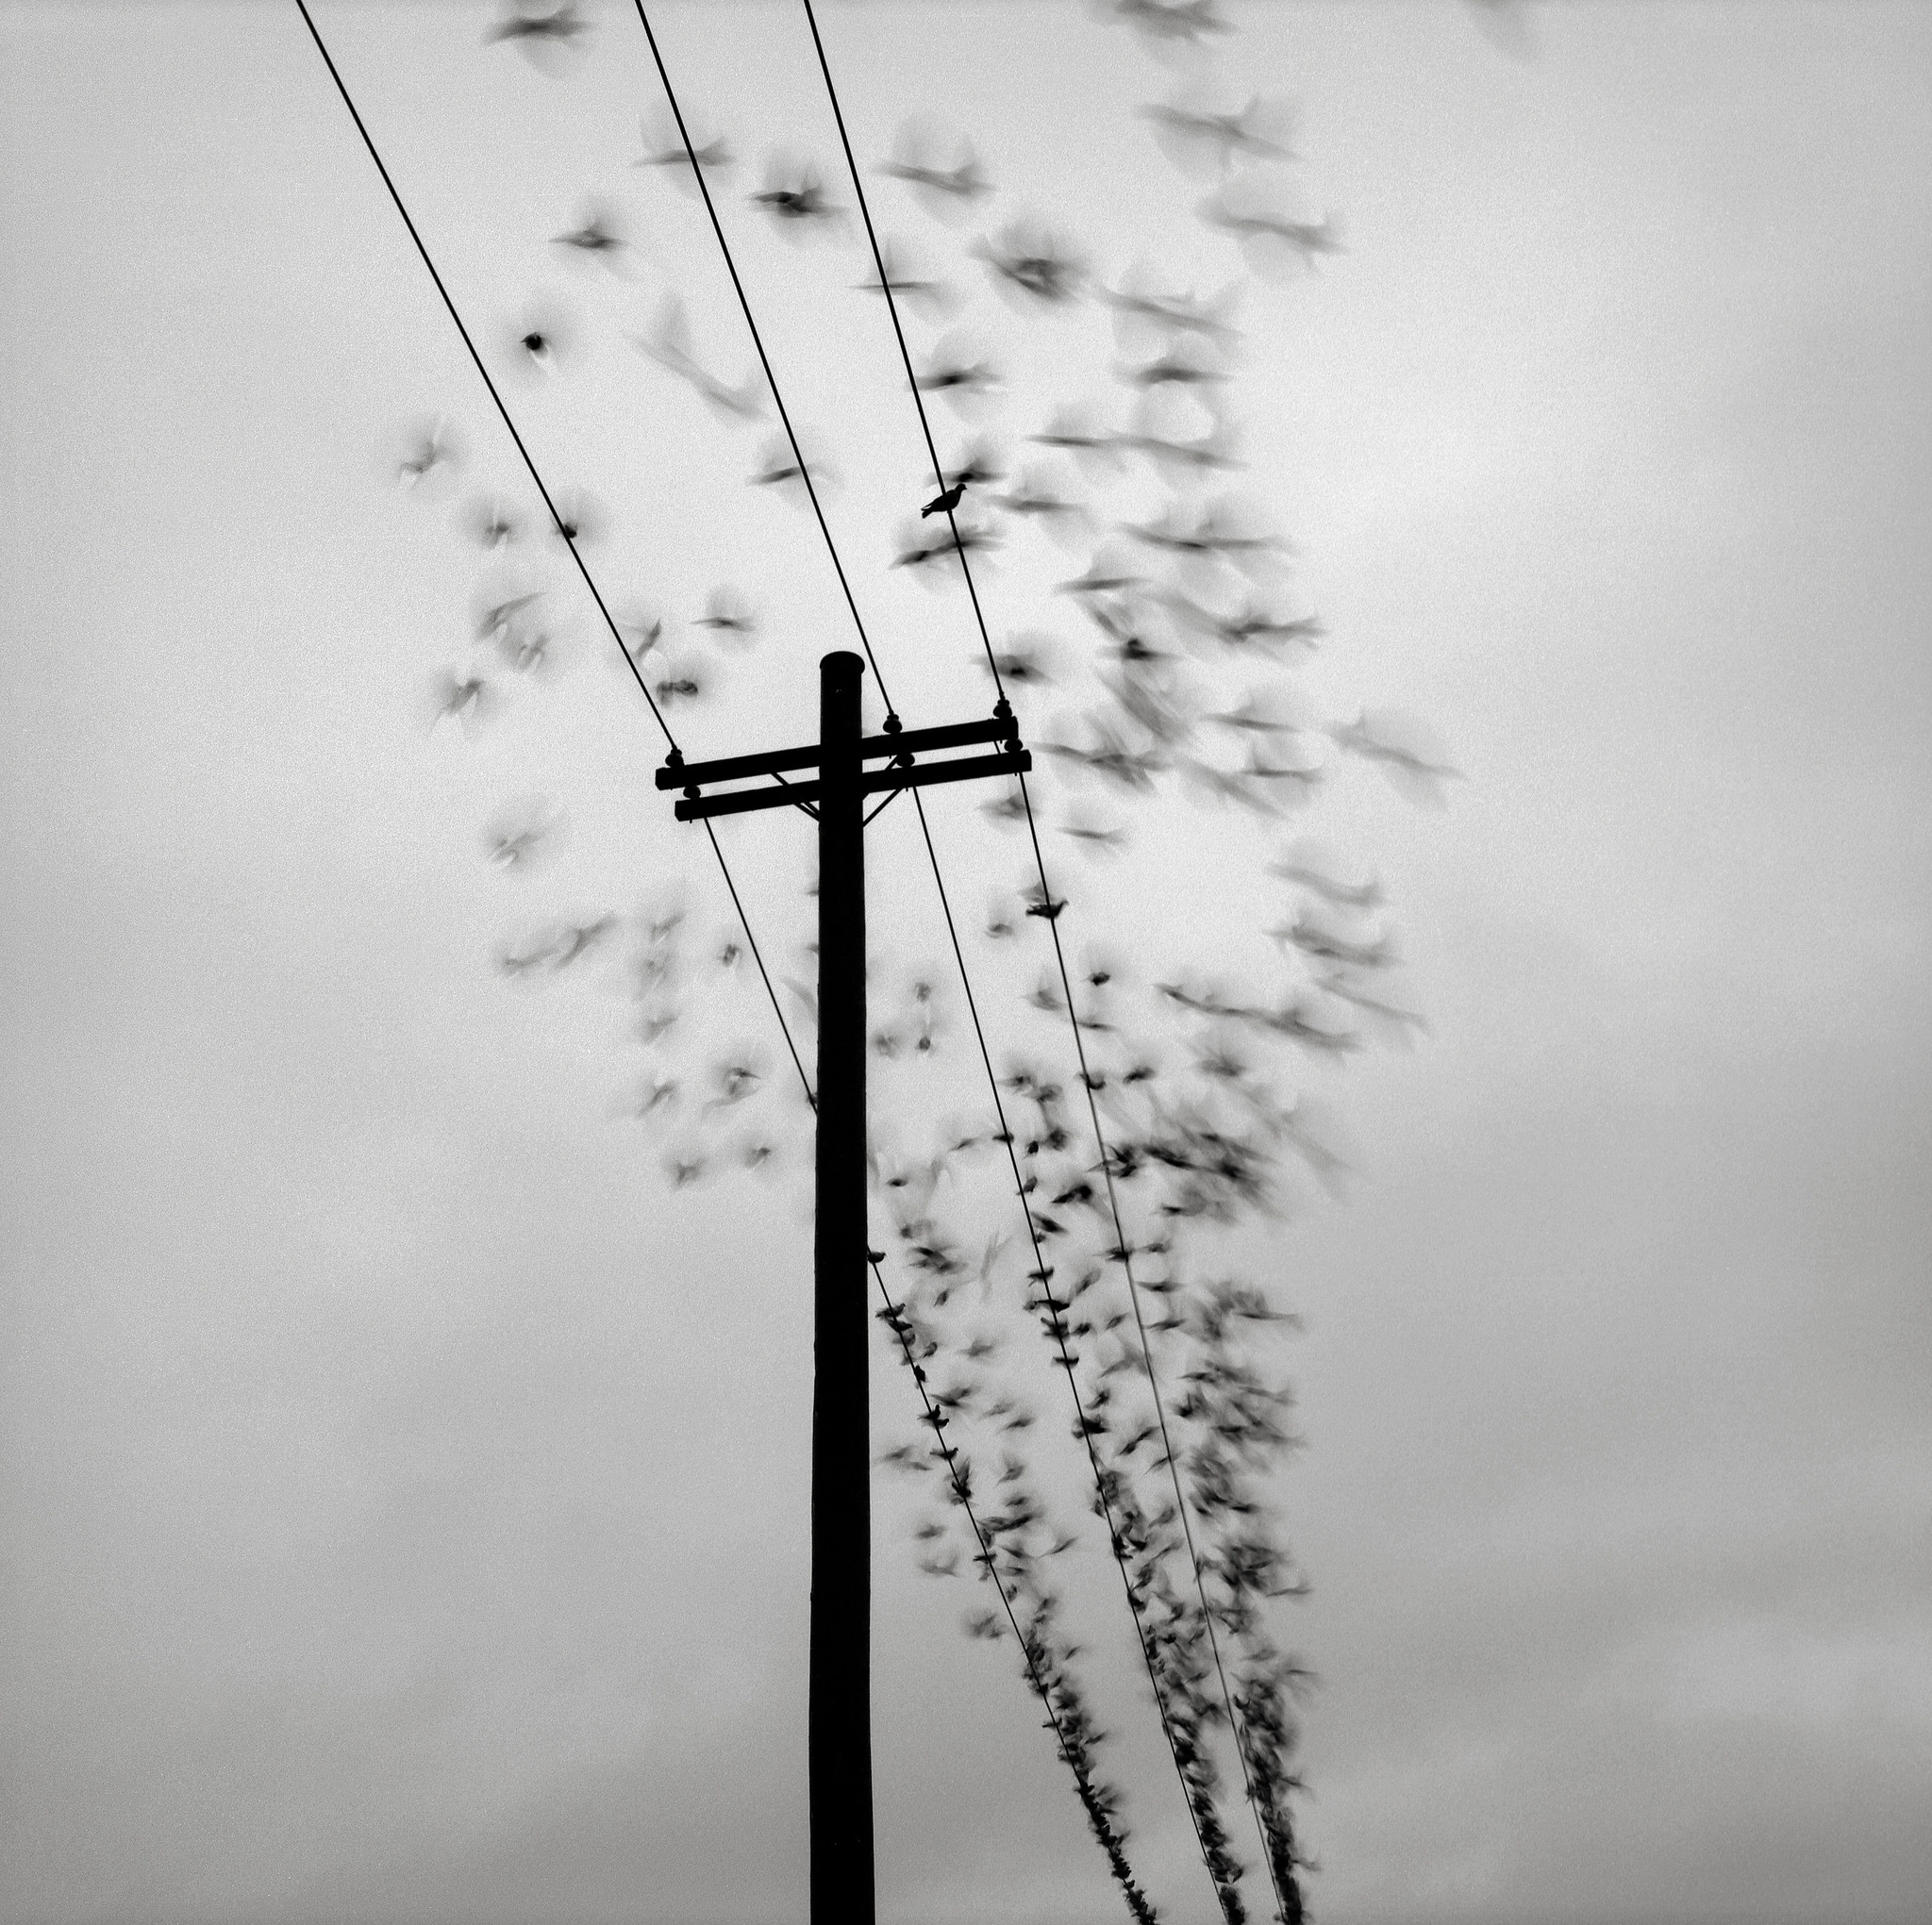 Telephone Pole with Birds, Portland